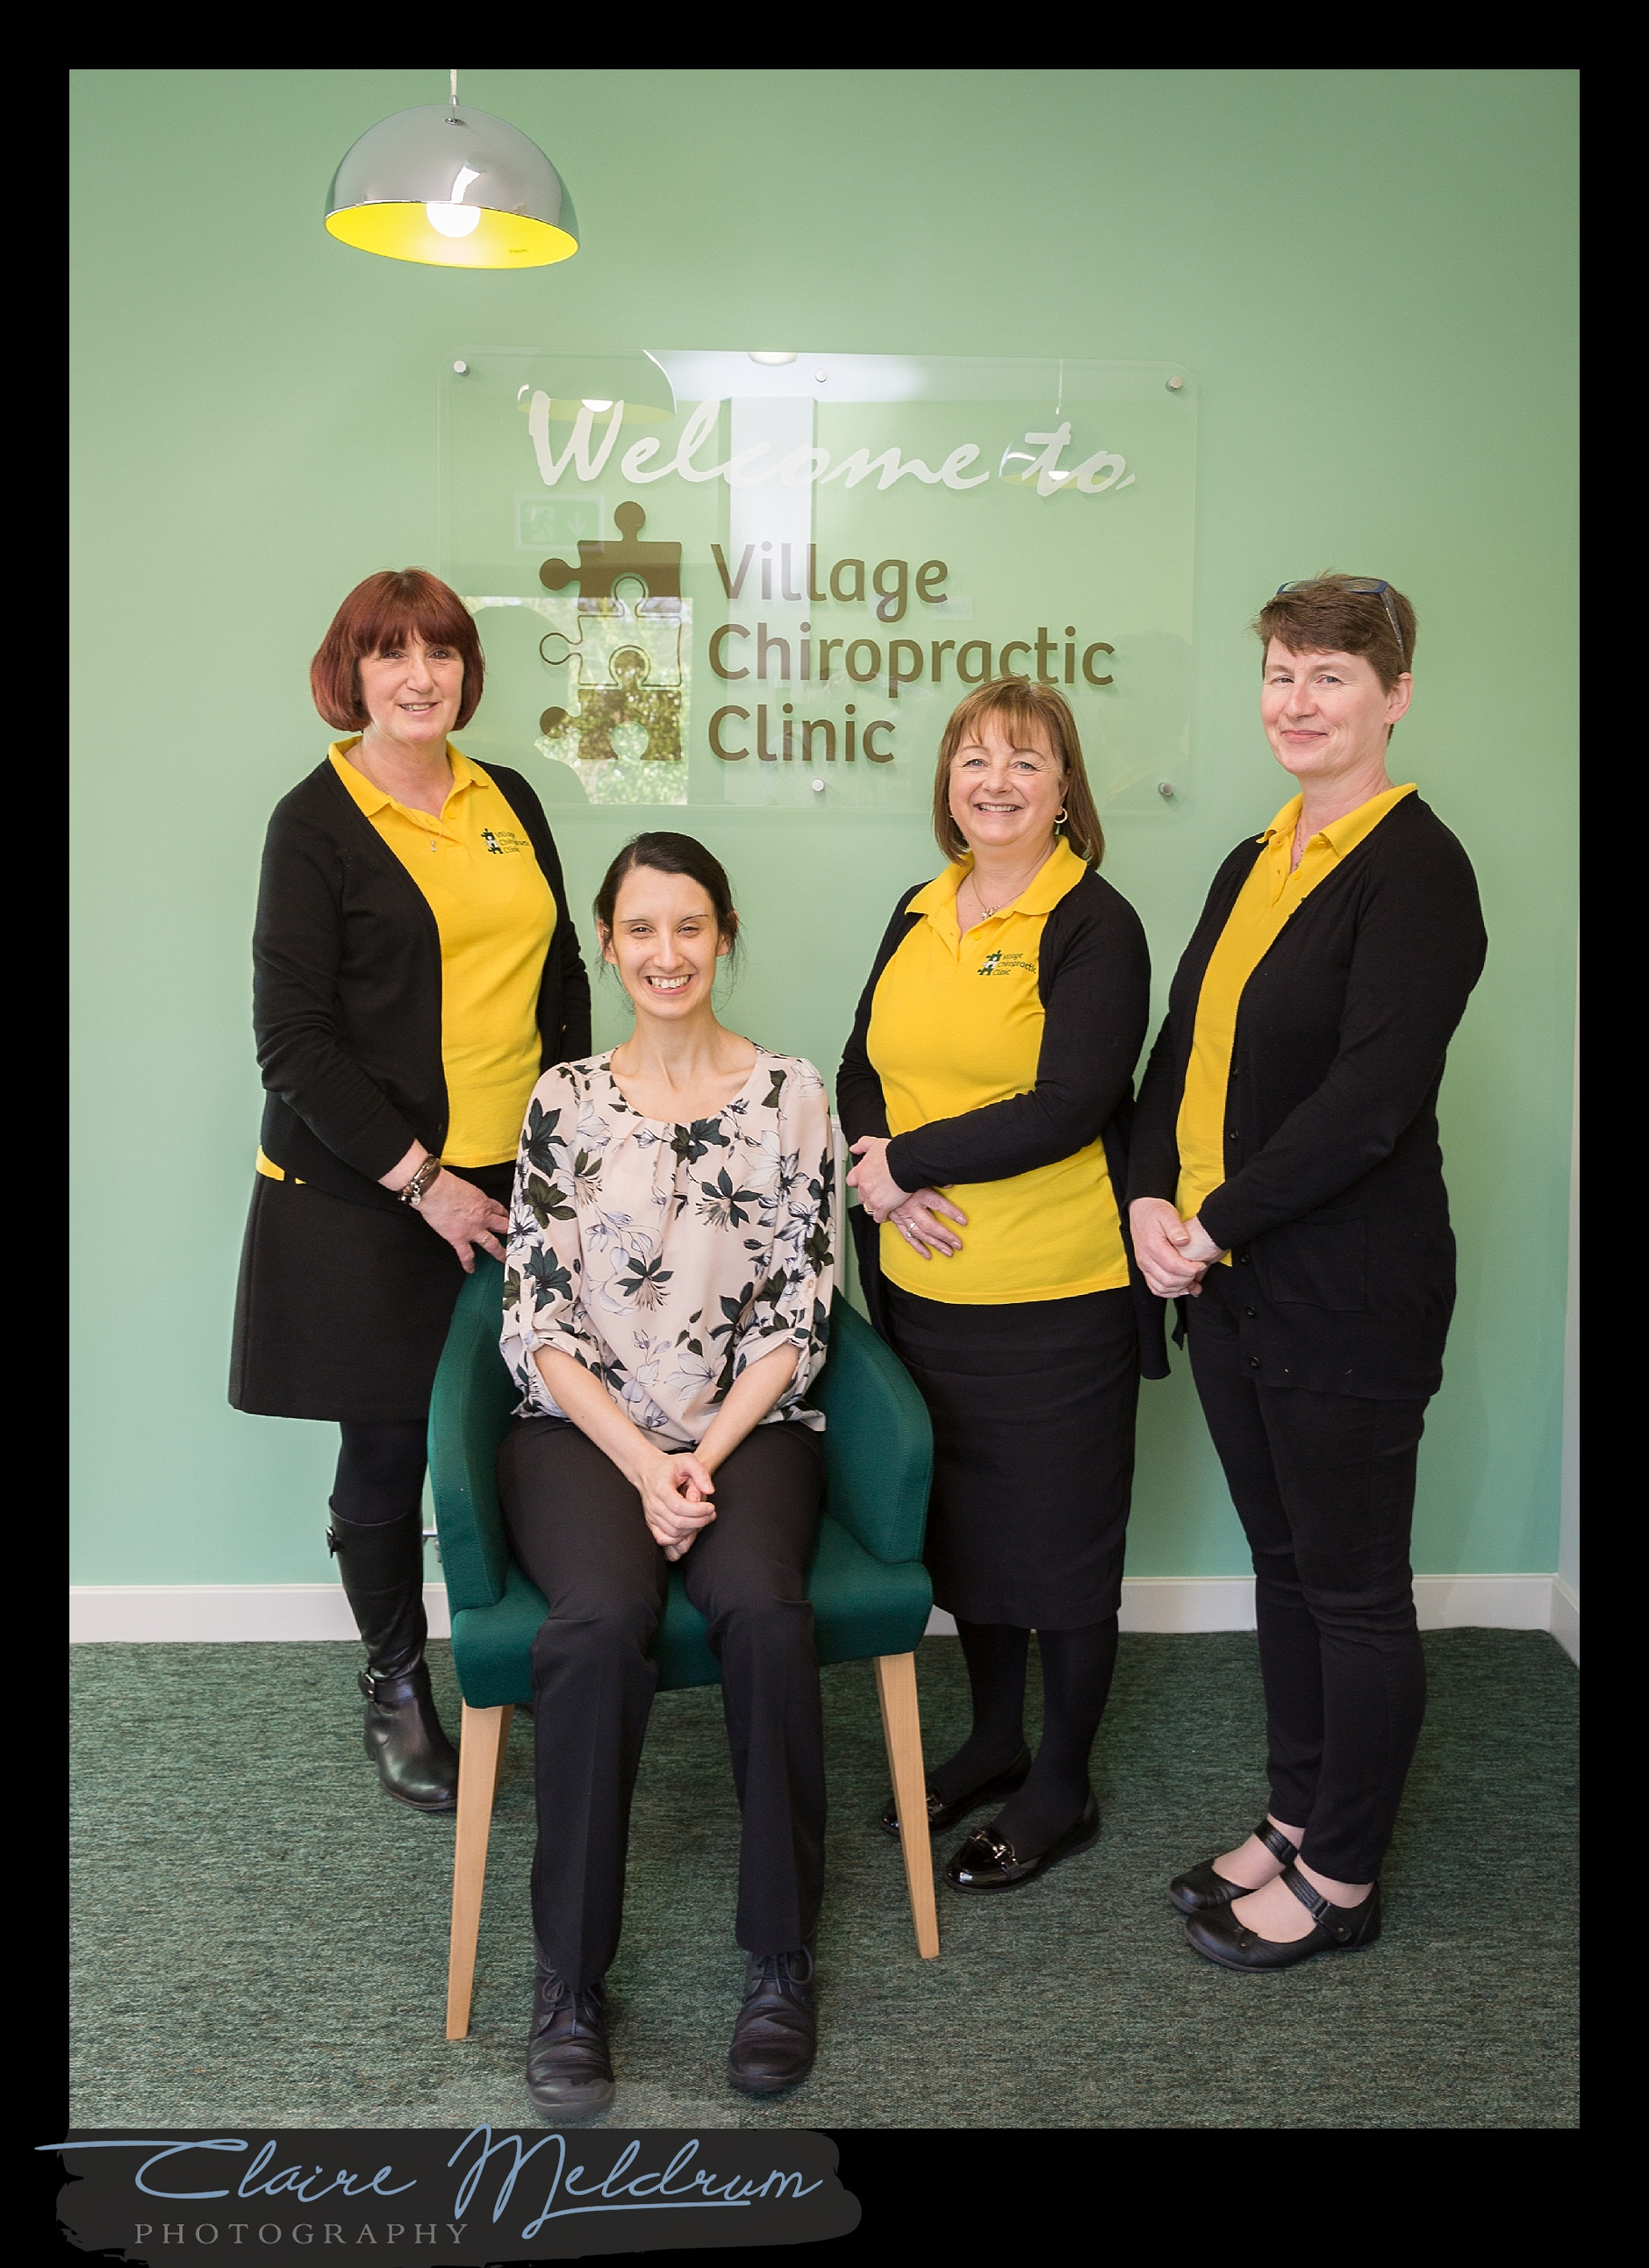 Jenny and the Village Chiropractic team.